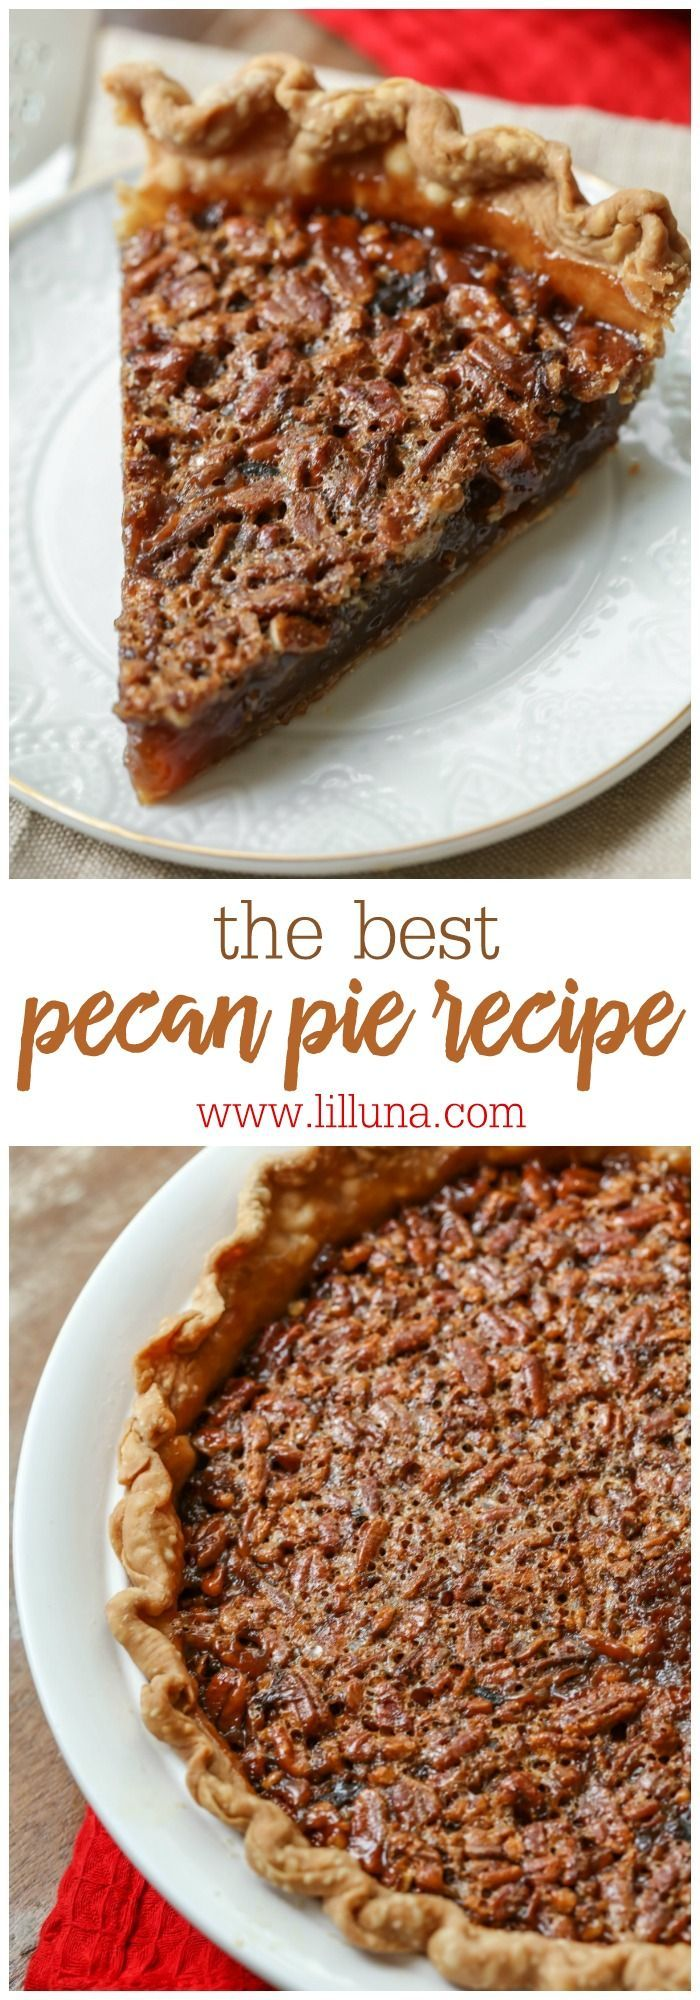 Pie pecan-pie-collageThe recipe for THE BEST Pecan Pie! Not only is this pie a MUST at Thanksgiving dinner - it's a perfect pie year round!pecan-pie-collageThe recipe for THE BEST Pecan Pie! Not only is this pie a MUST at Thanksgiving dinner - it's a perfect pie year round!